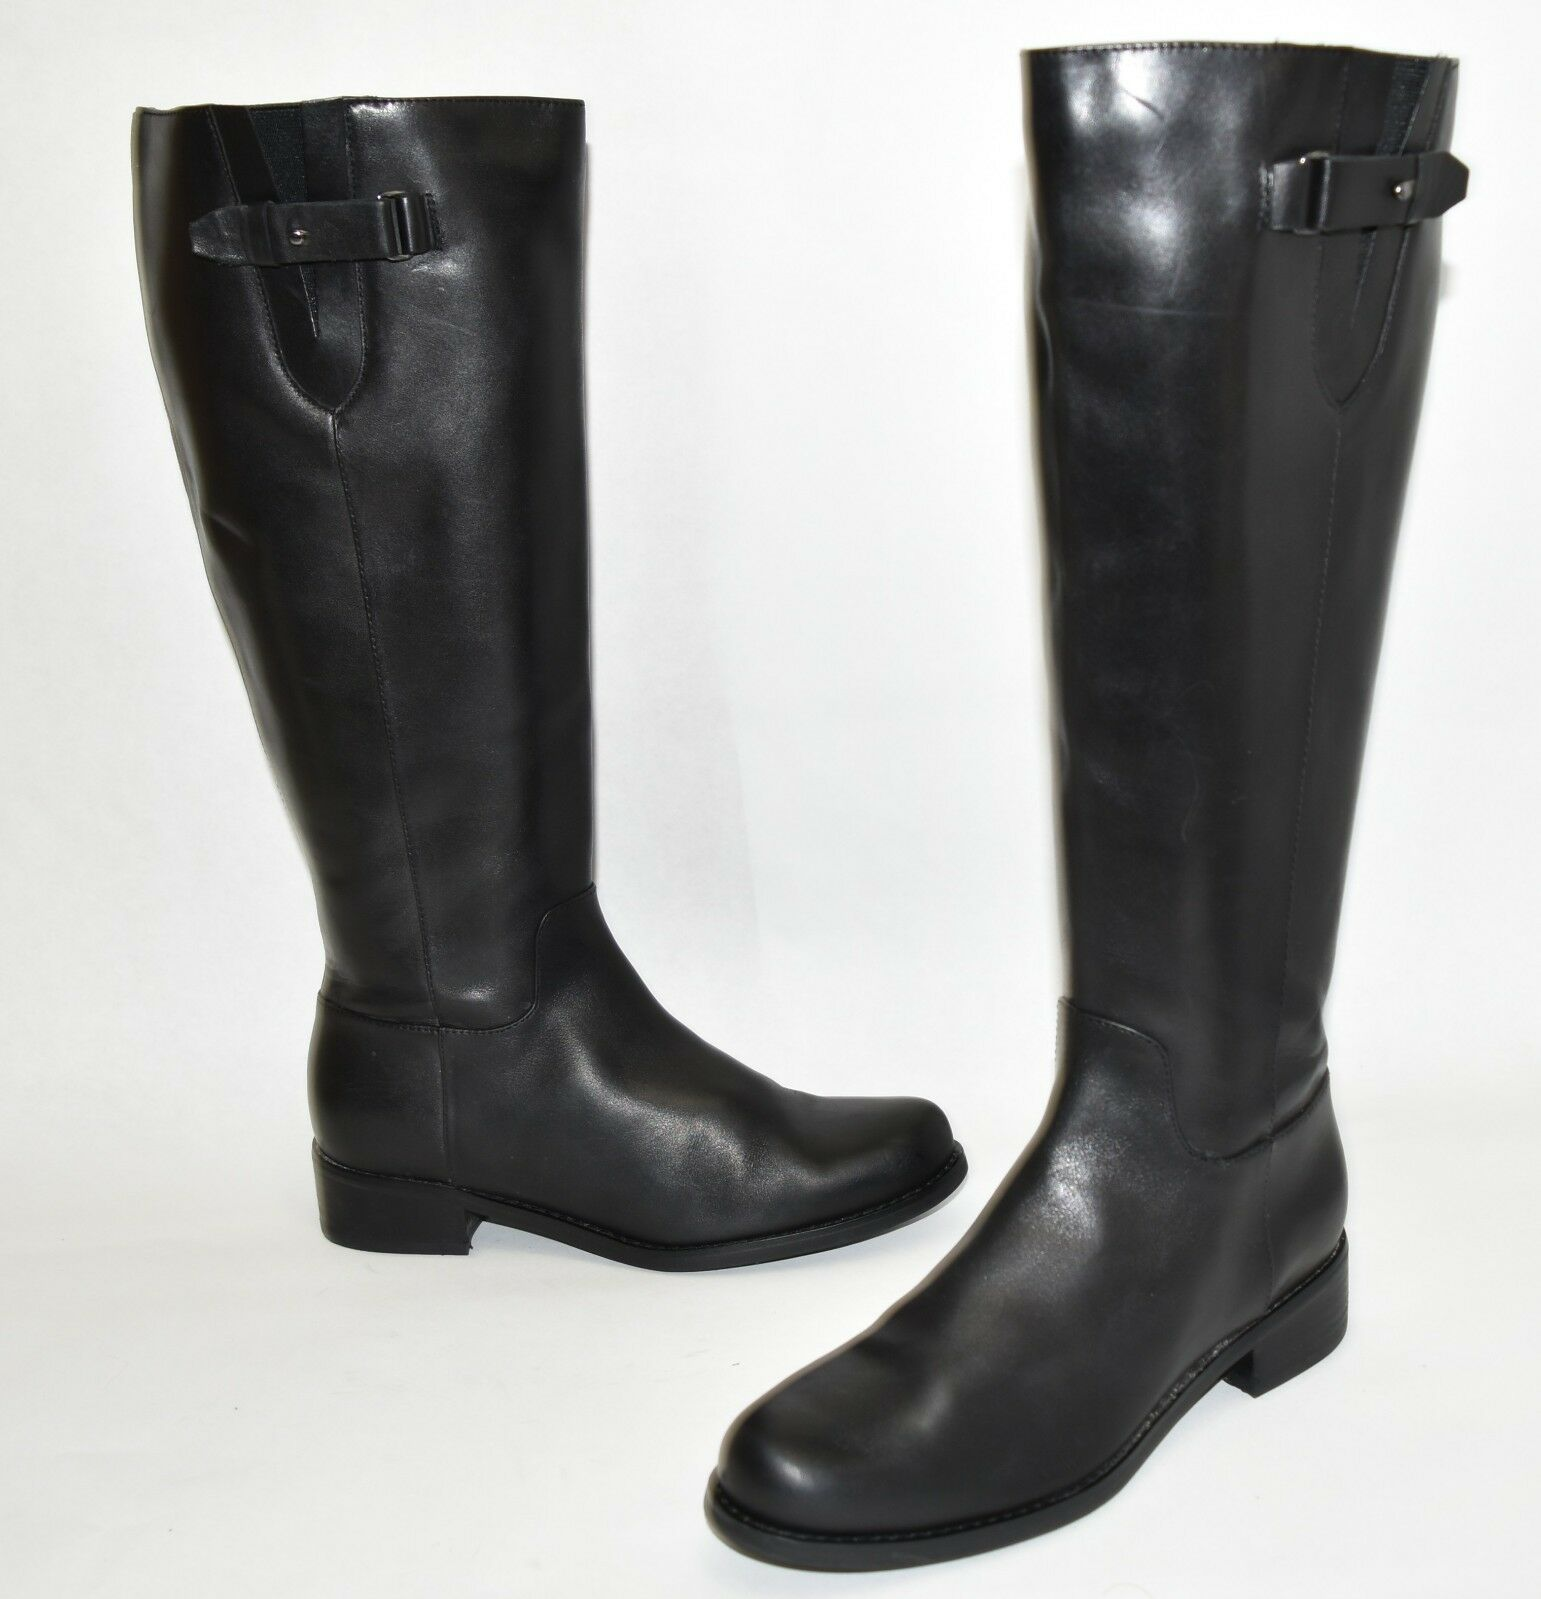 Blondo Volly Waterproof Riding Boot Black Leather B5668 Size 6.5